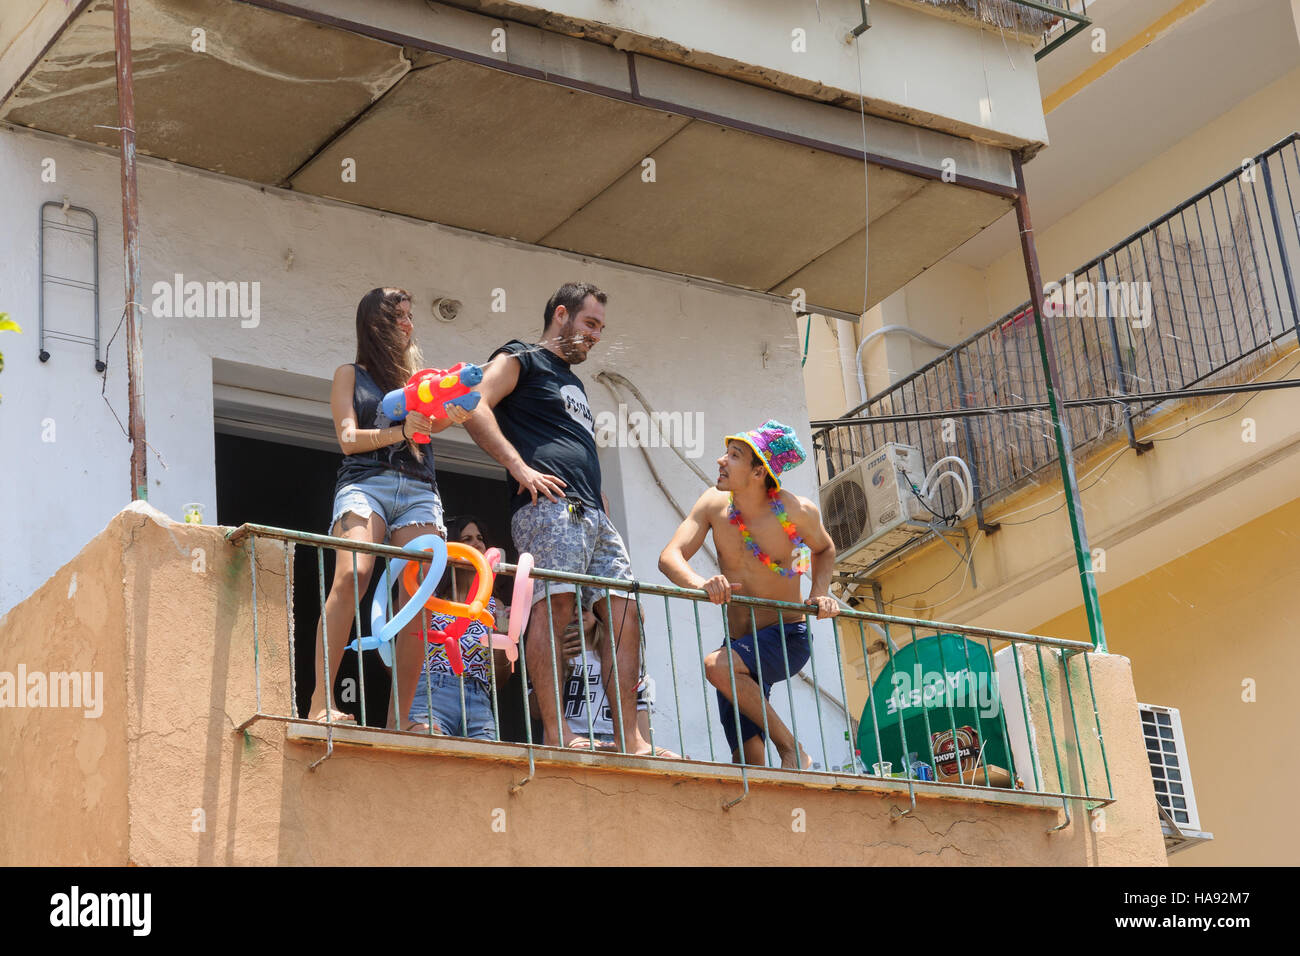 TEL-AVIV - JUNE 13, 2014: Spectator refresh the pride parade participants with cold water. The annual parade in - Stock Image